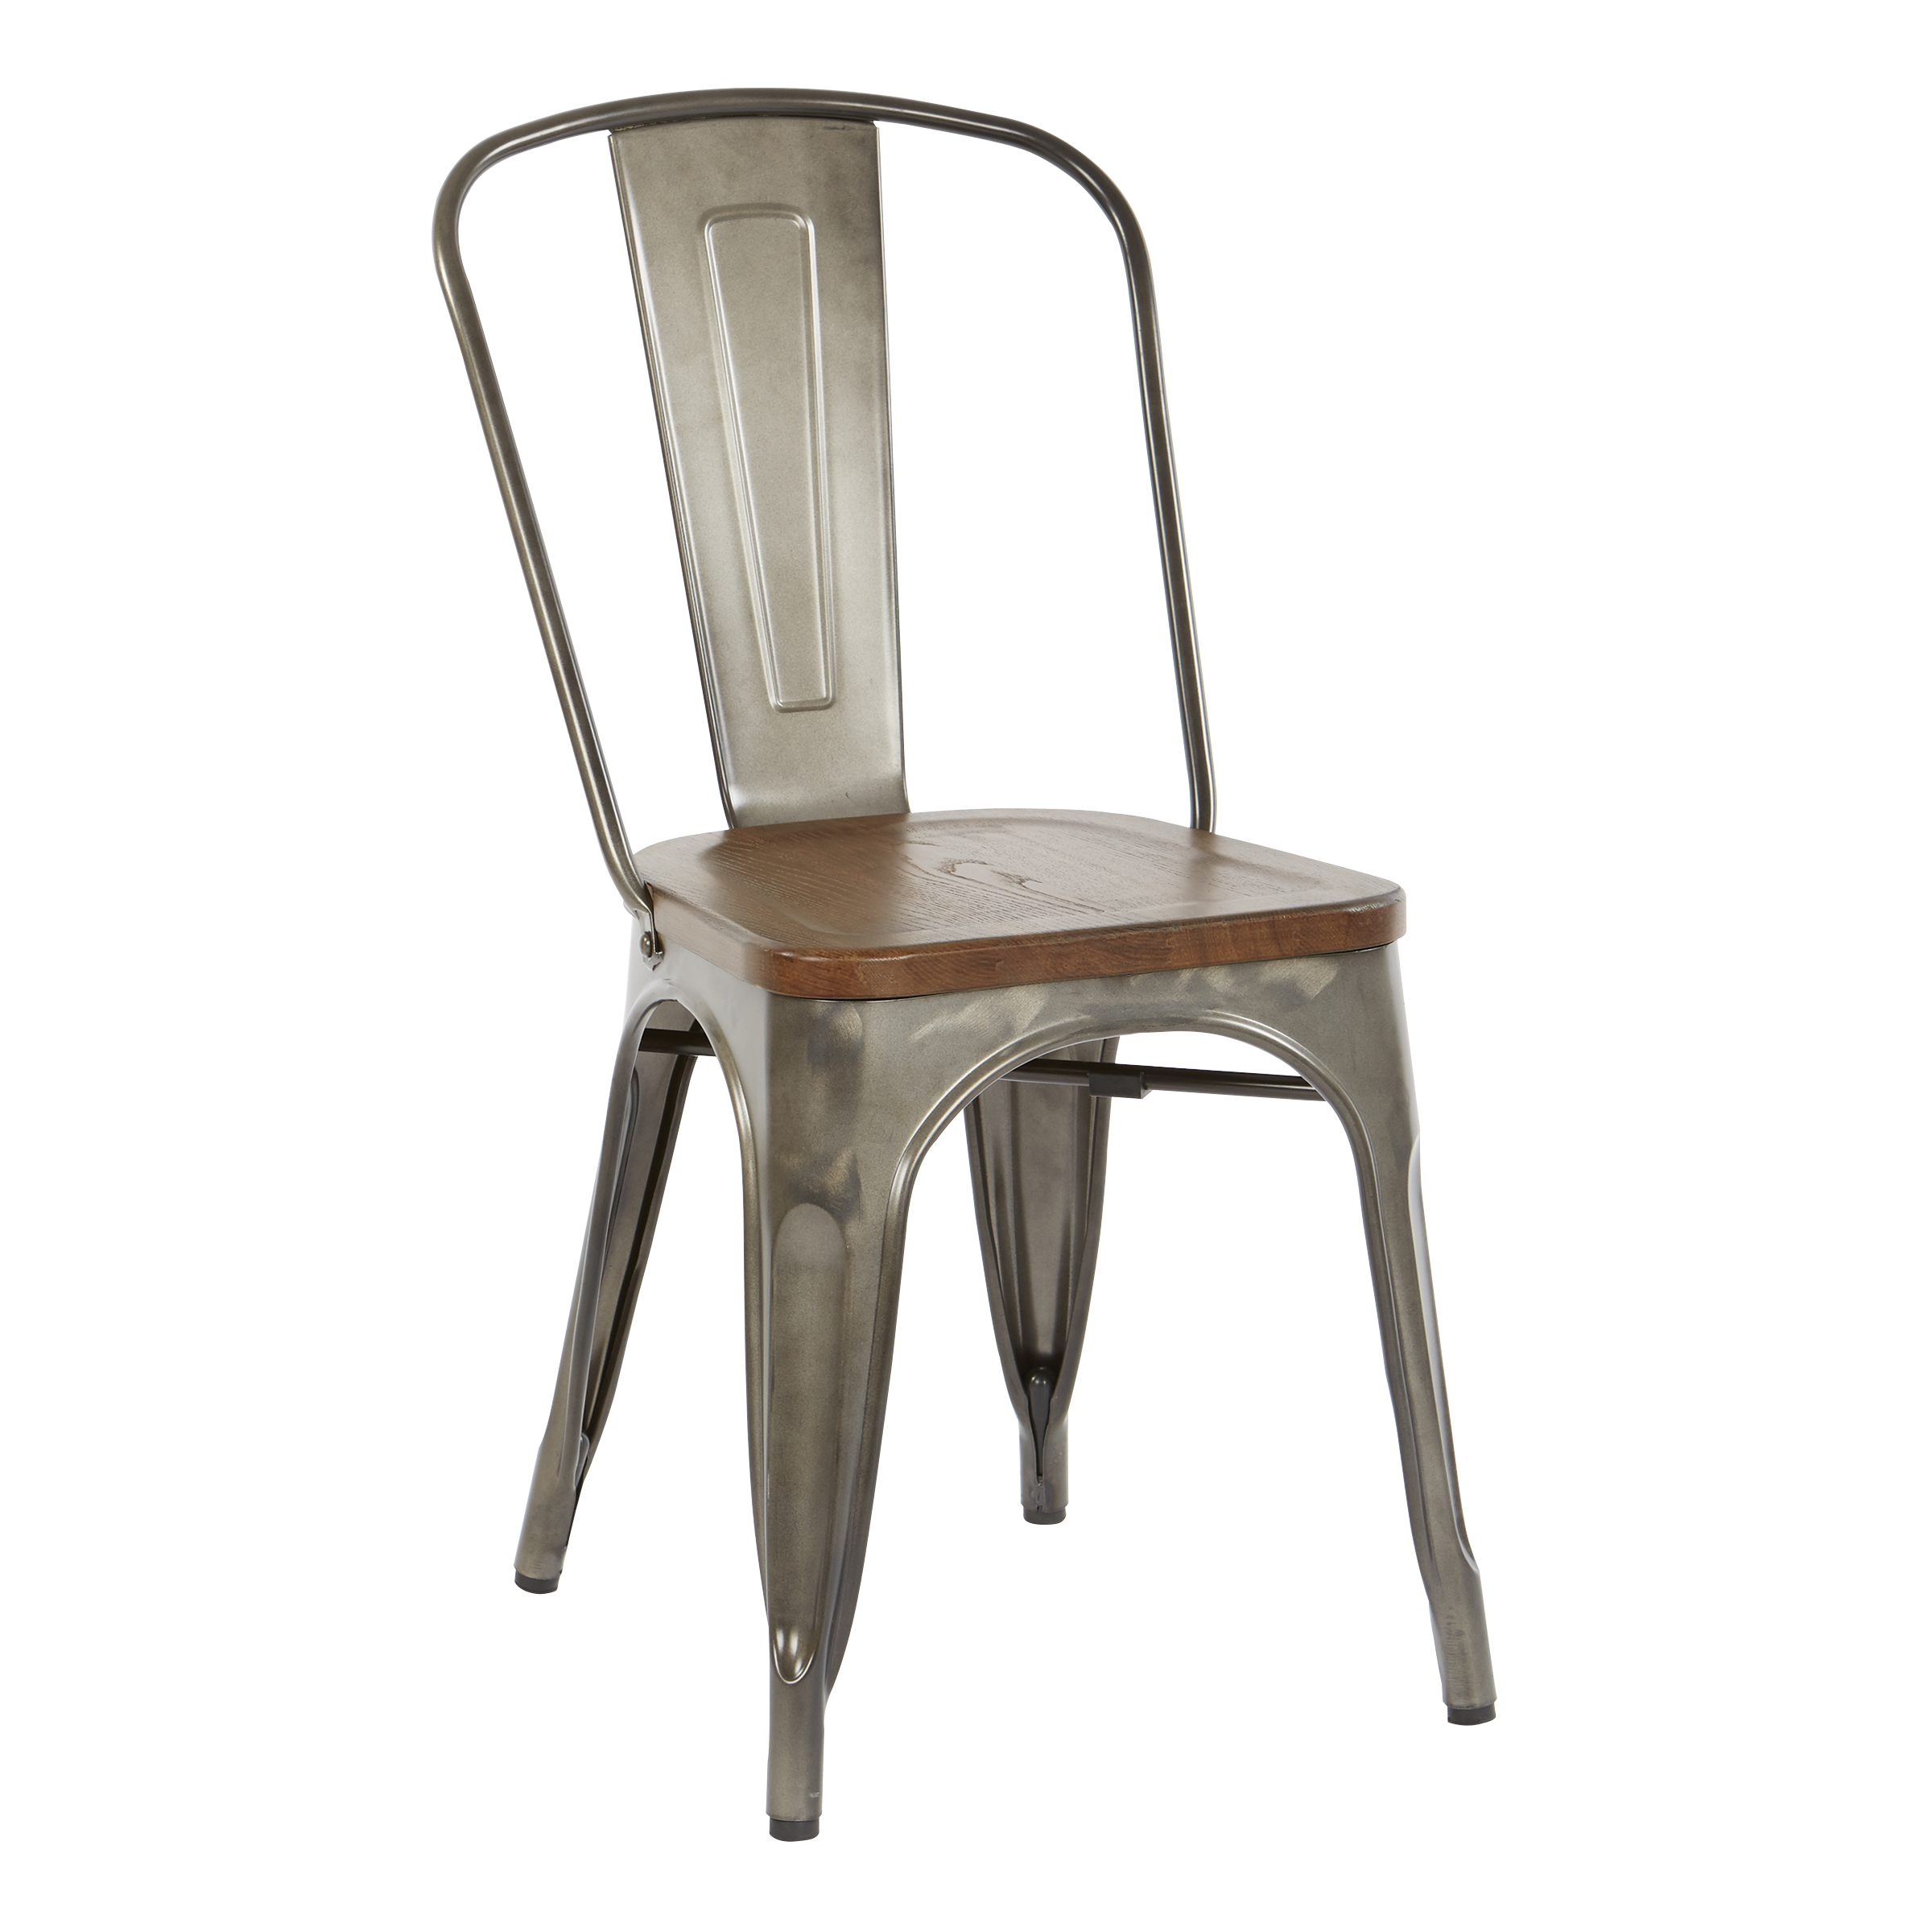 OSP Designs Indio Metal Chair with Vintage Ash Walnut Wood Seat and Matte Gunmetal Frame 4-Pack